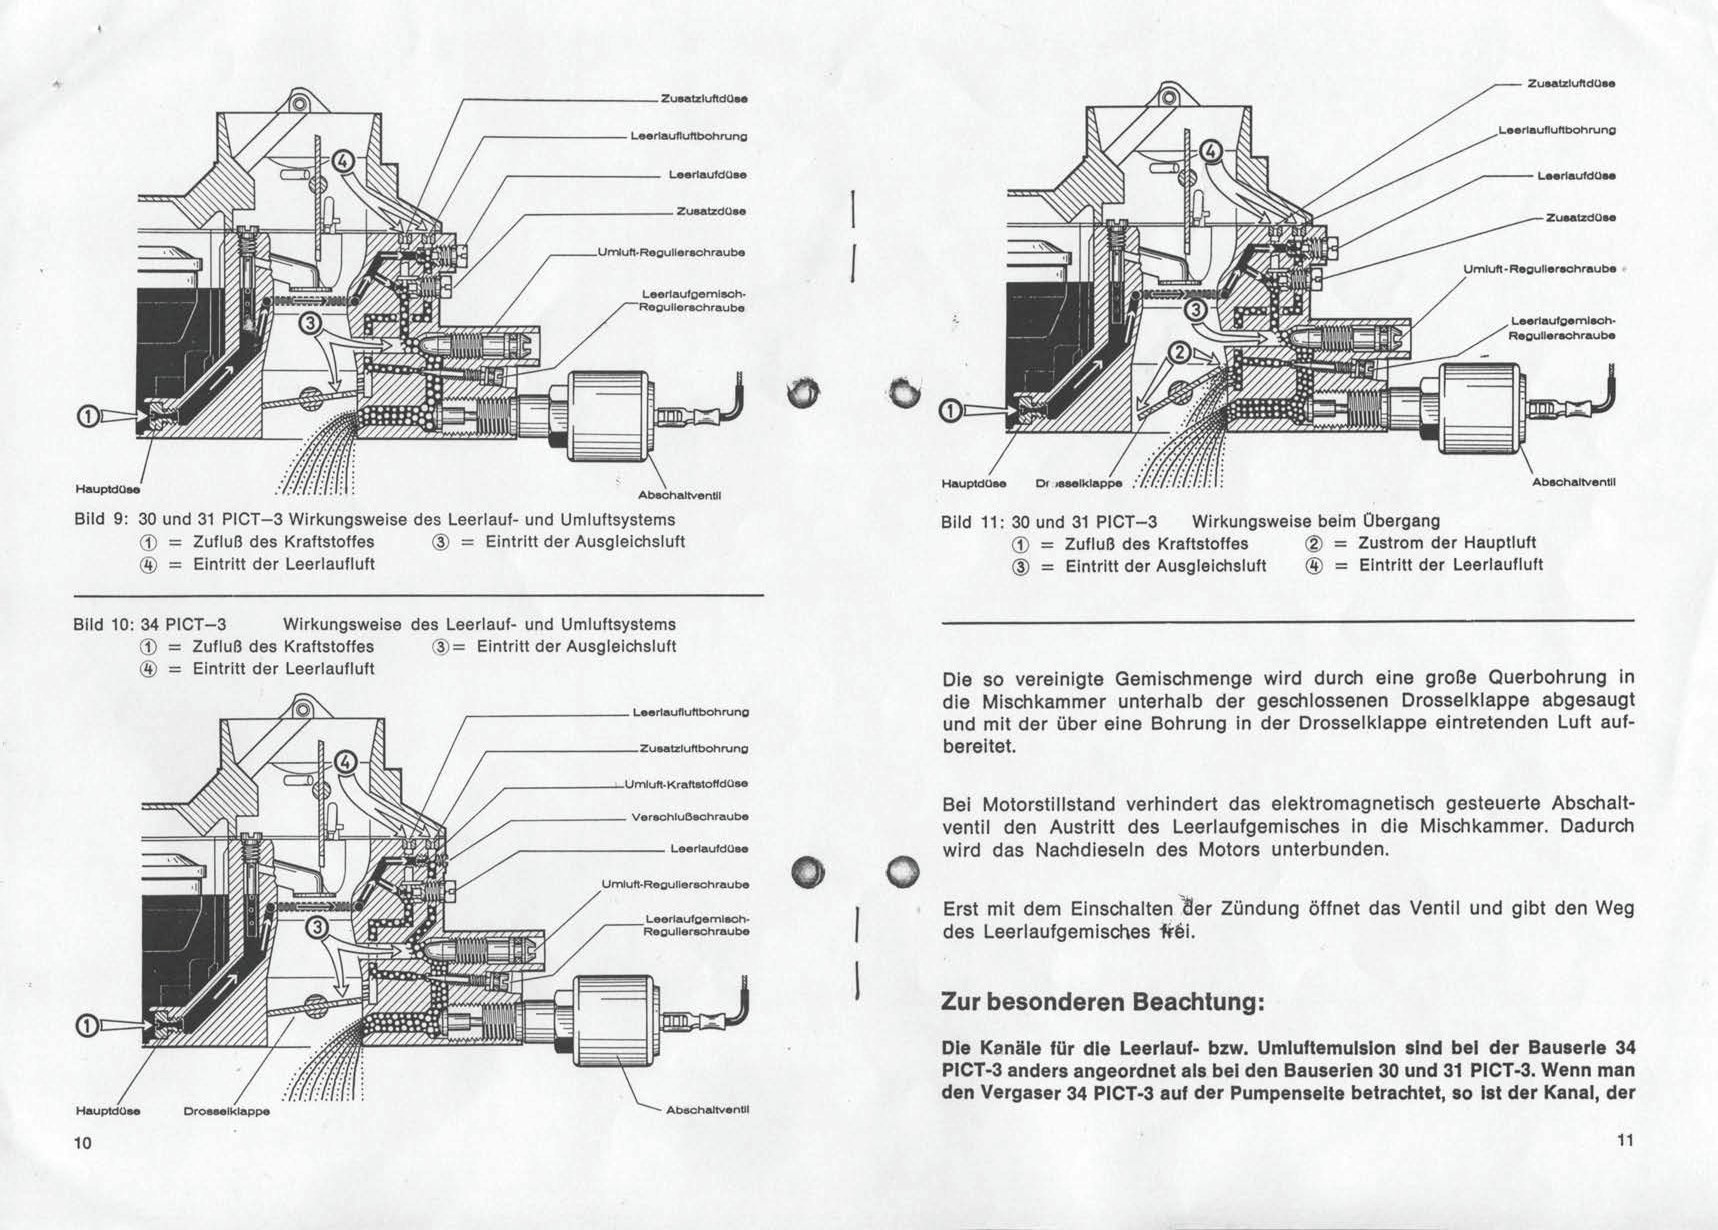 volkswagen wiring diagrams with Solex 30 34 German on Gmc Truck Radiator Cover also Viewtopic moreover Golf 92 Wiring Diagrams Eng as well Manual Transmission Clutch Pedal Diagram furthermore Solex 30 34 german.